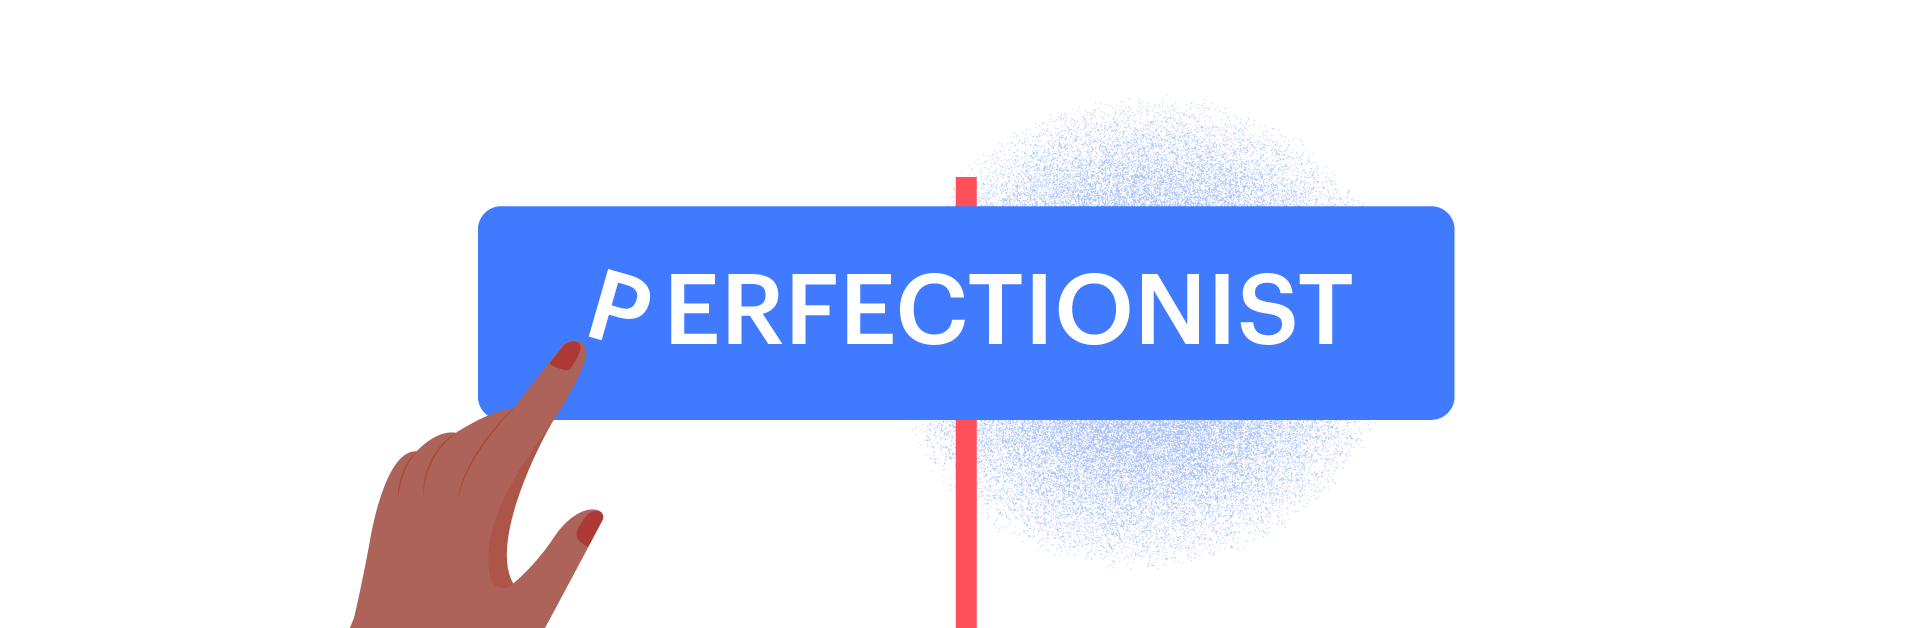 The more you aim for a 100% perfect job, the more you get stressed and lose efficiency and productivity. Put 20% focused efforts as that would get you 80% of the results.